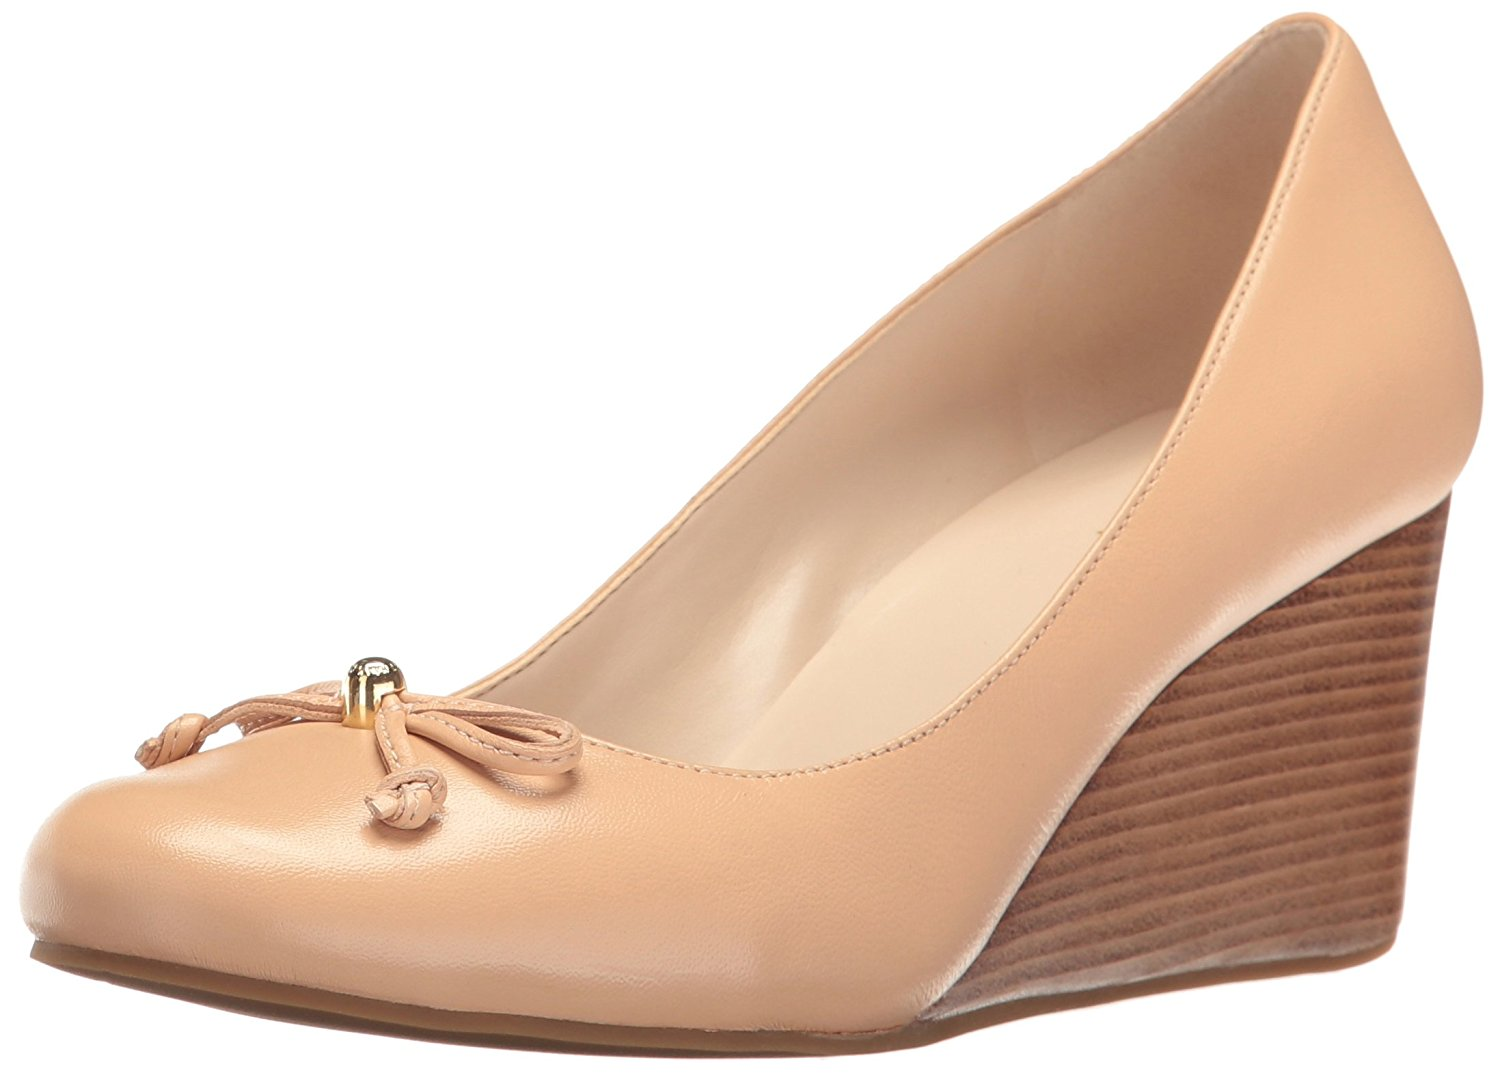 Cole Haan Womens Elsie Lce Wdg Leather Closed Toe Wedge Pumps